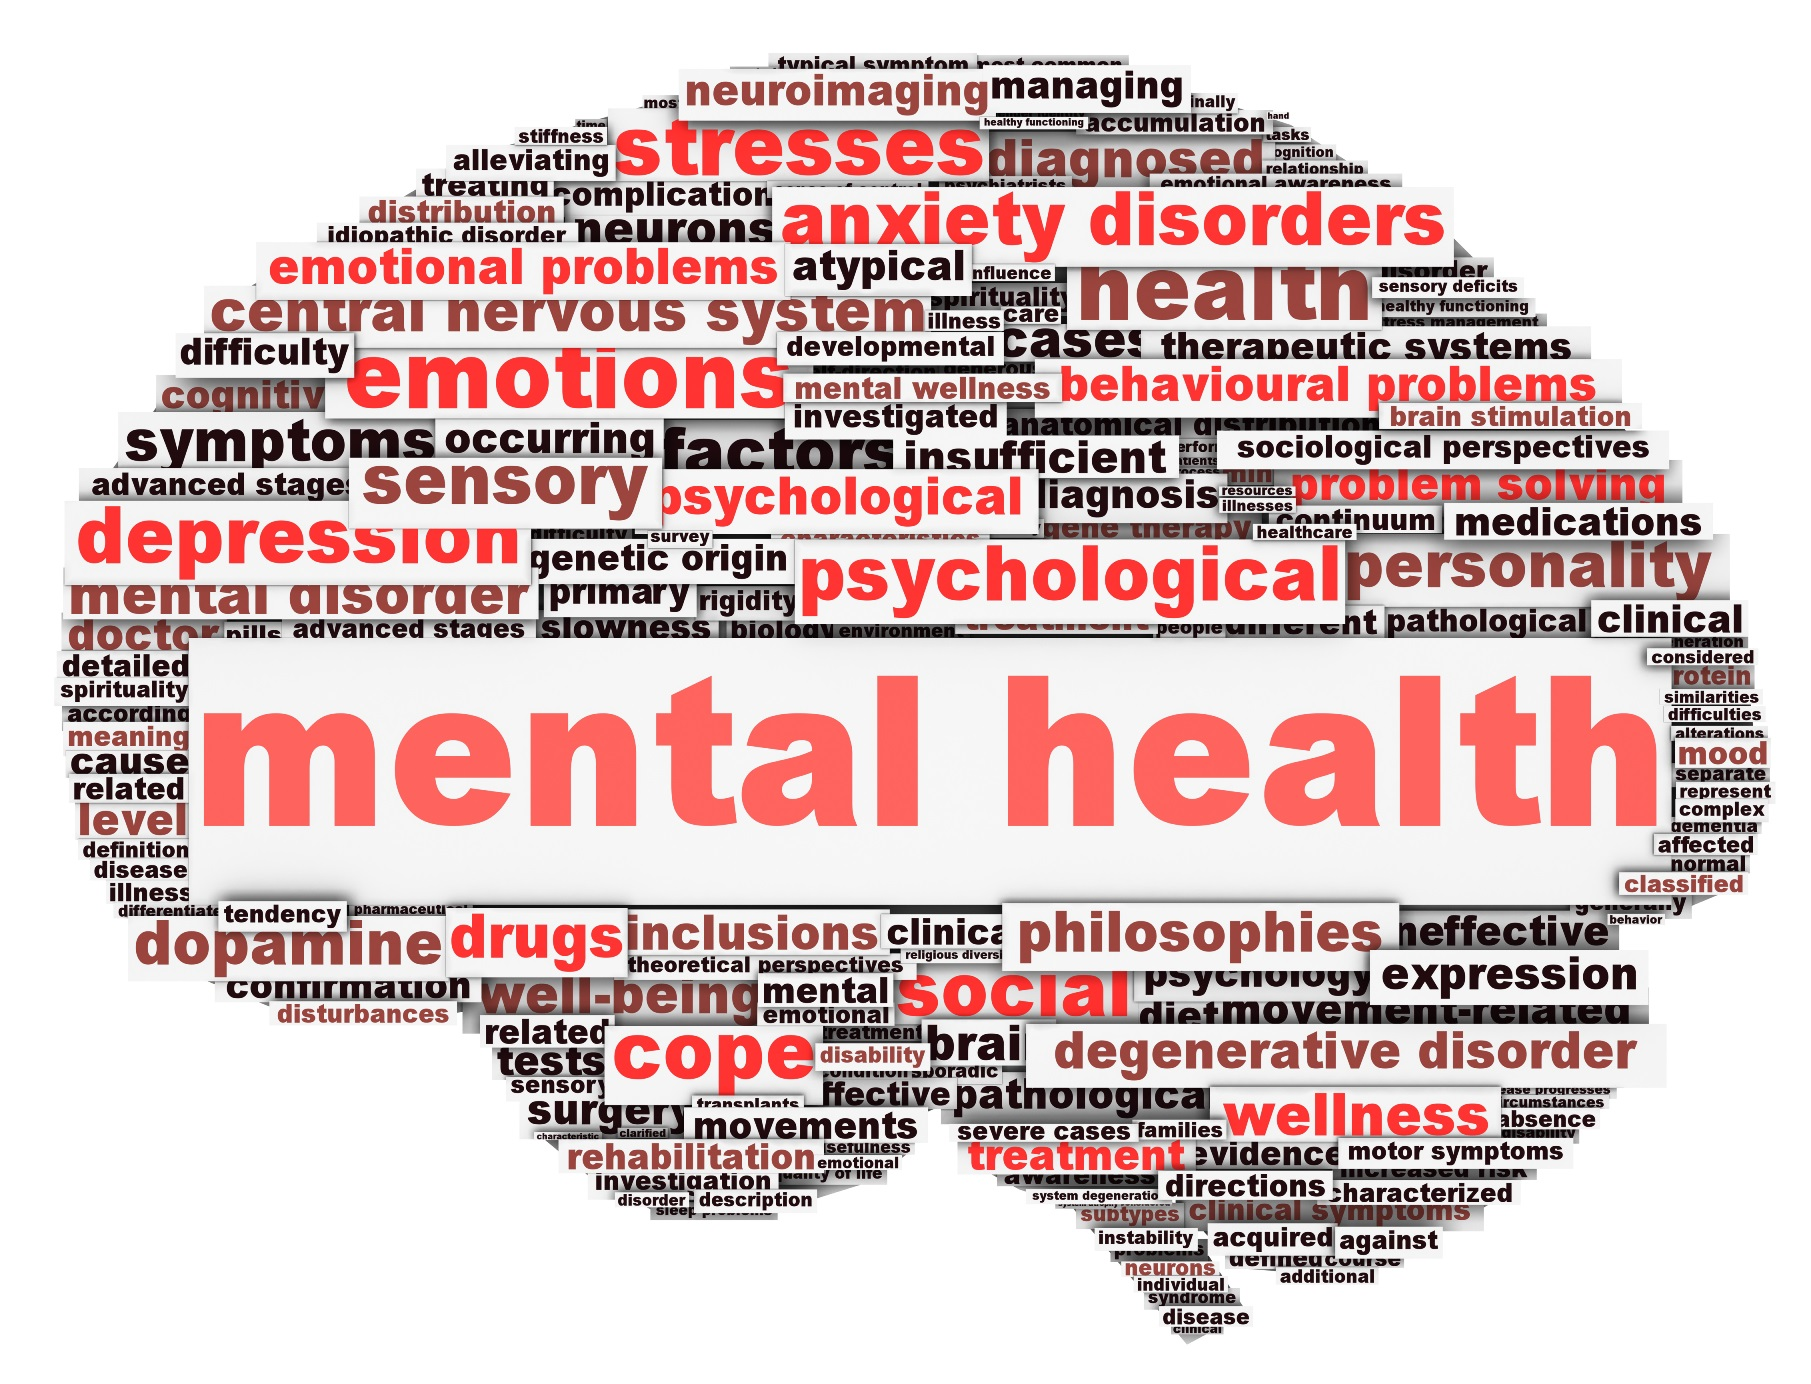 Mental Health Essays Interesting Topics That Can Be Developed  Mental Health Essays Interesting Topics That Can Be Developed Essay  Free  Essays  Phdessaycom